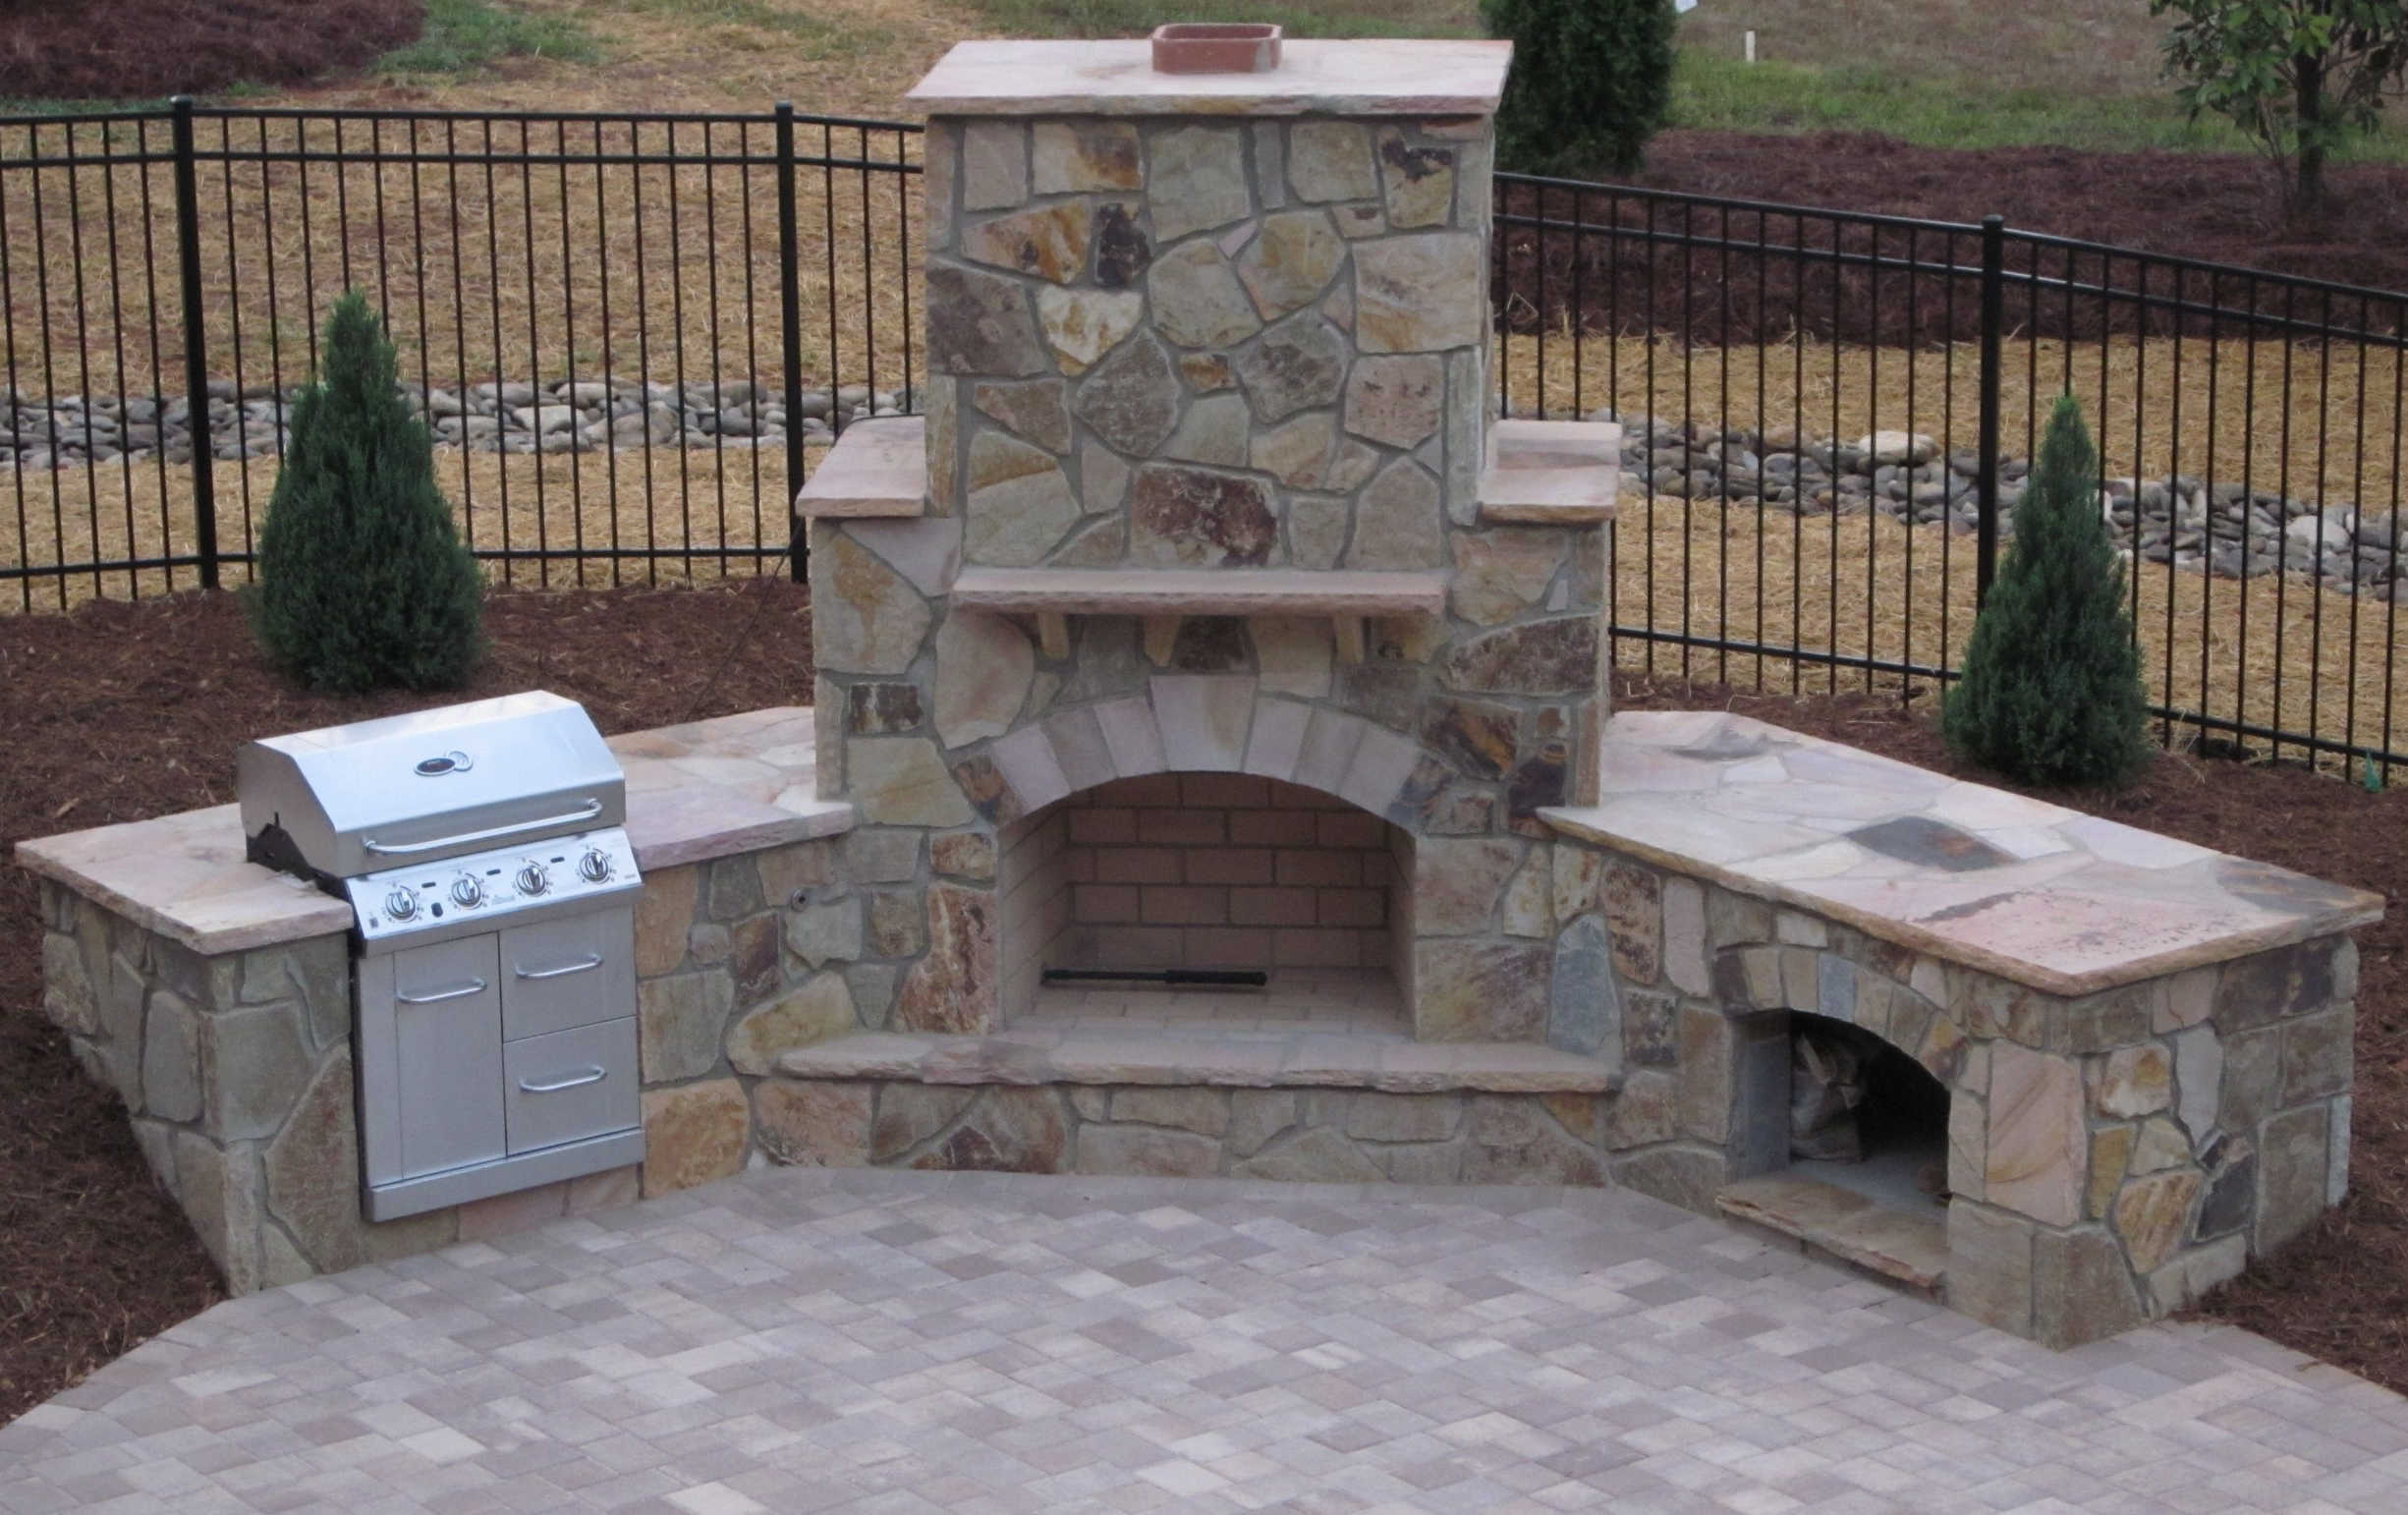 Garden Fireplace Design Plans How To Build An Outdoor Fireplace  Stepbystep Guide